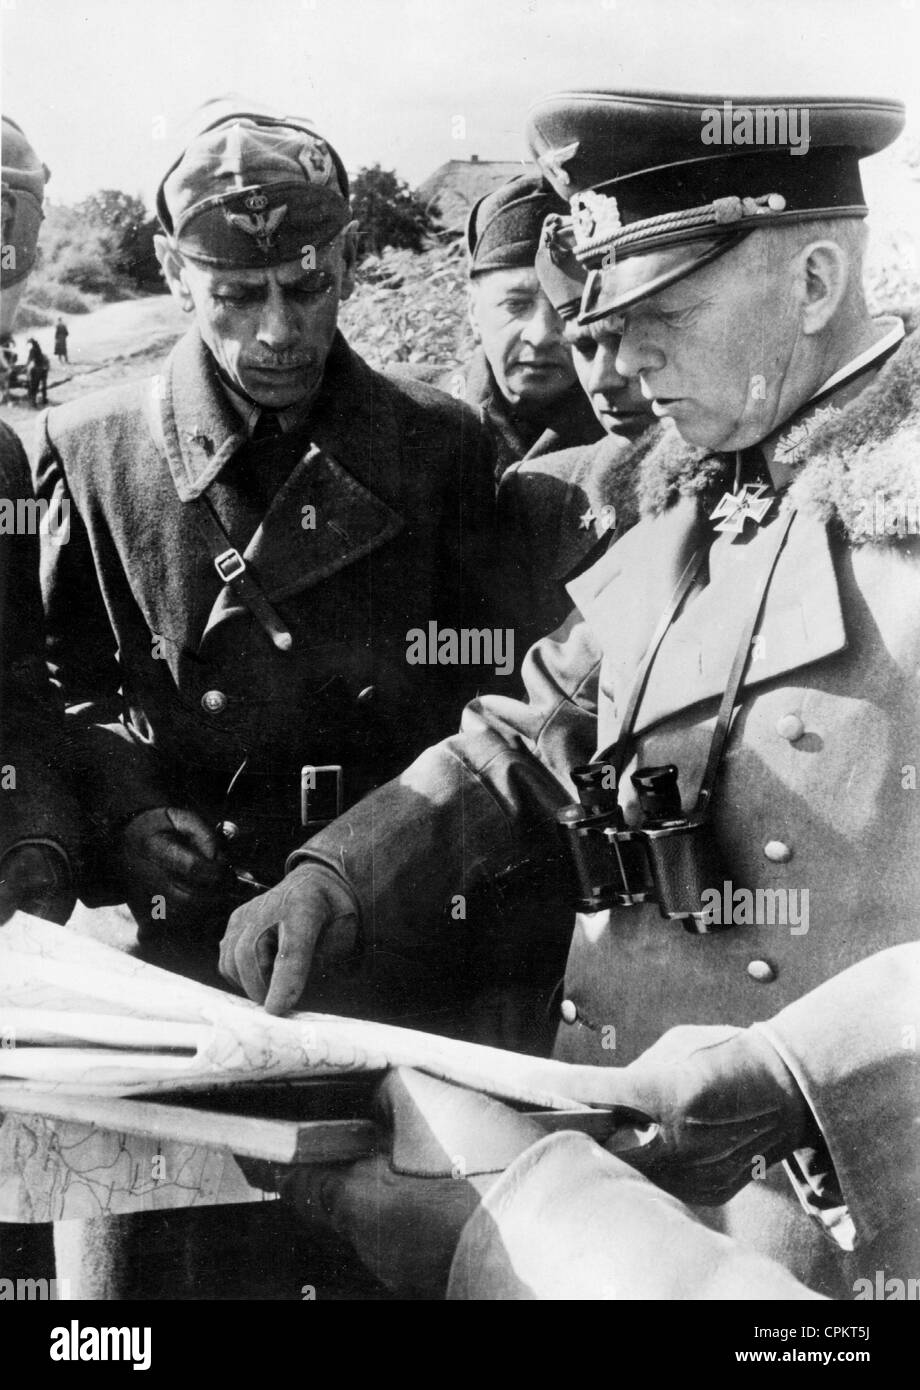 General Ewald von Kleist and General Giovannelli in the Ukraine, 1941 Stock Photo